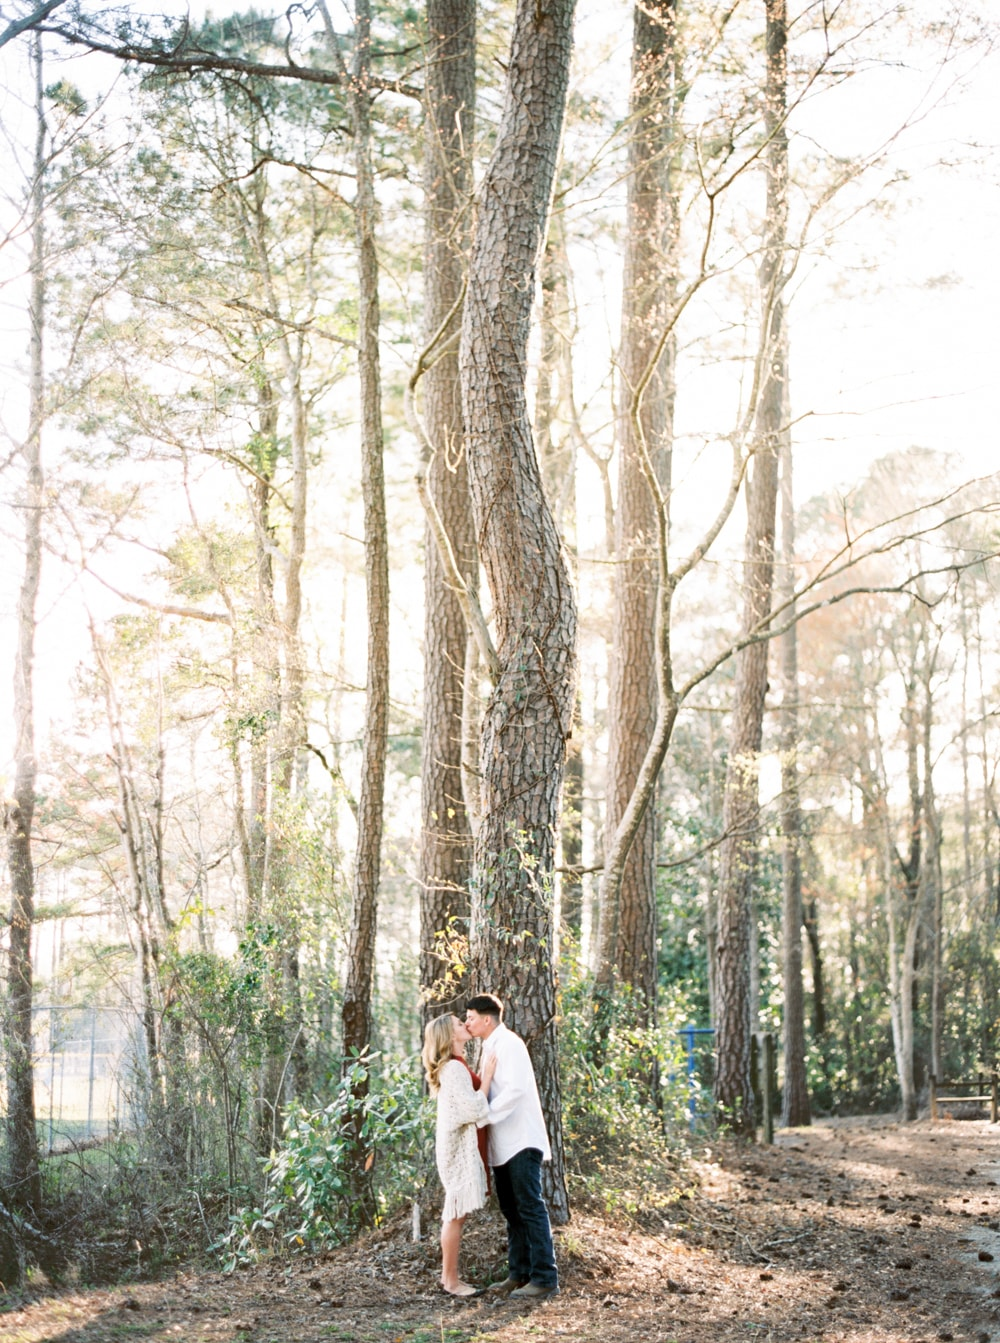 north-carolina-engagement-photography-72-min.jpg